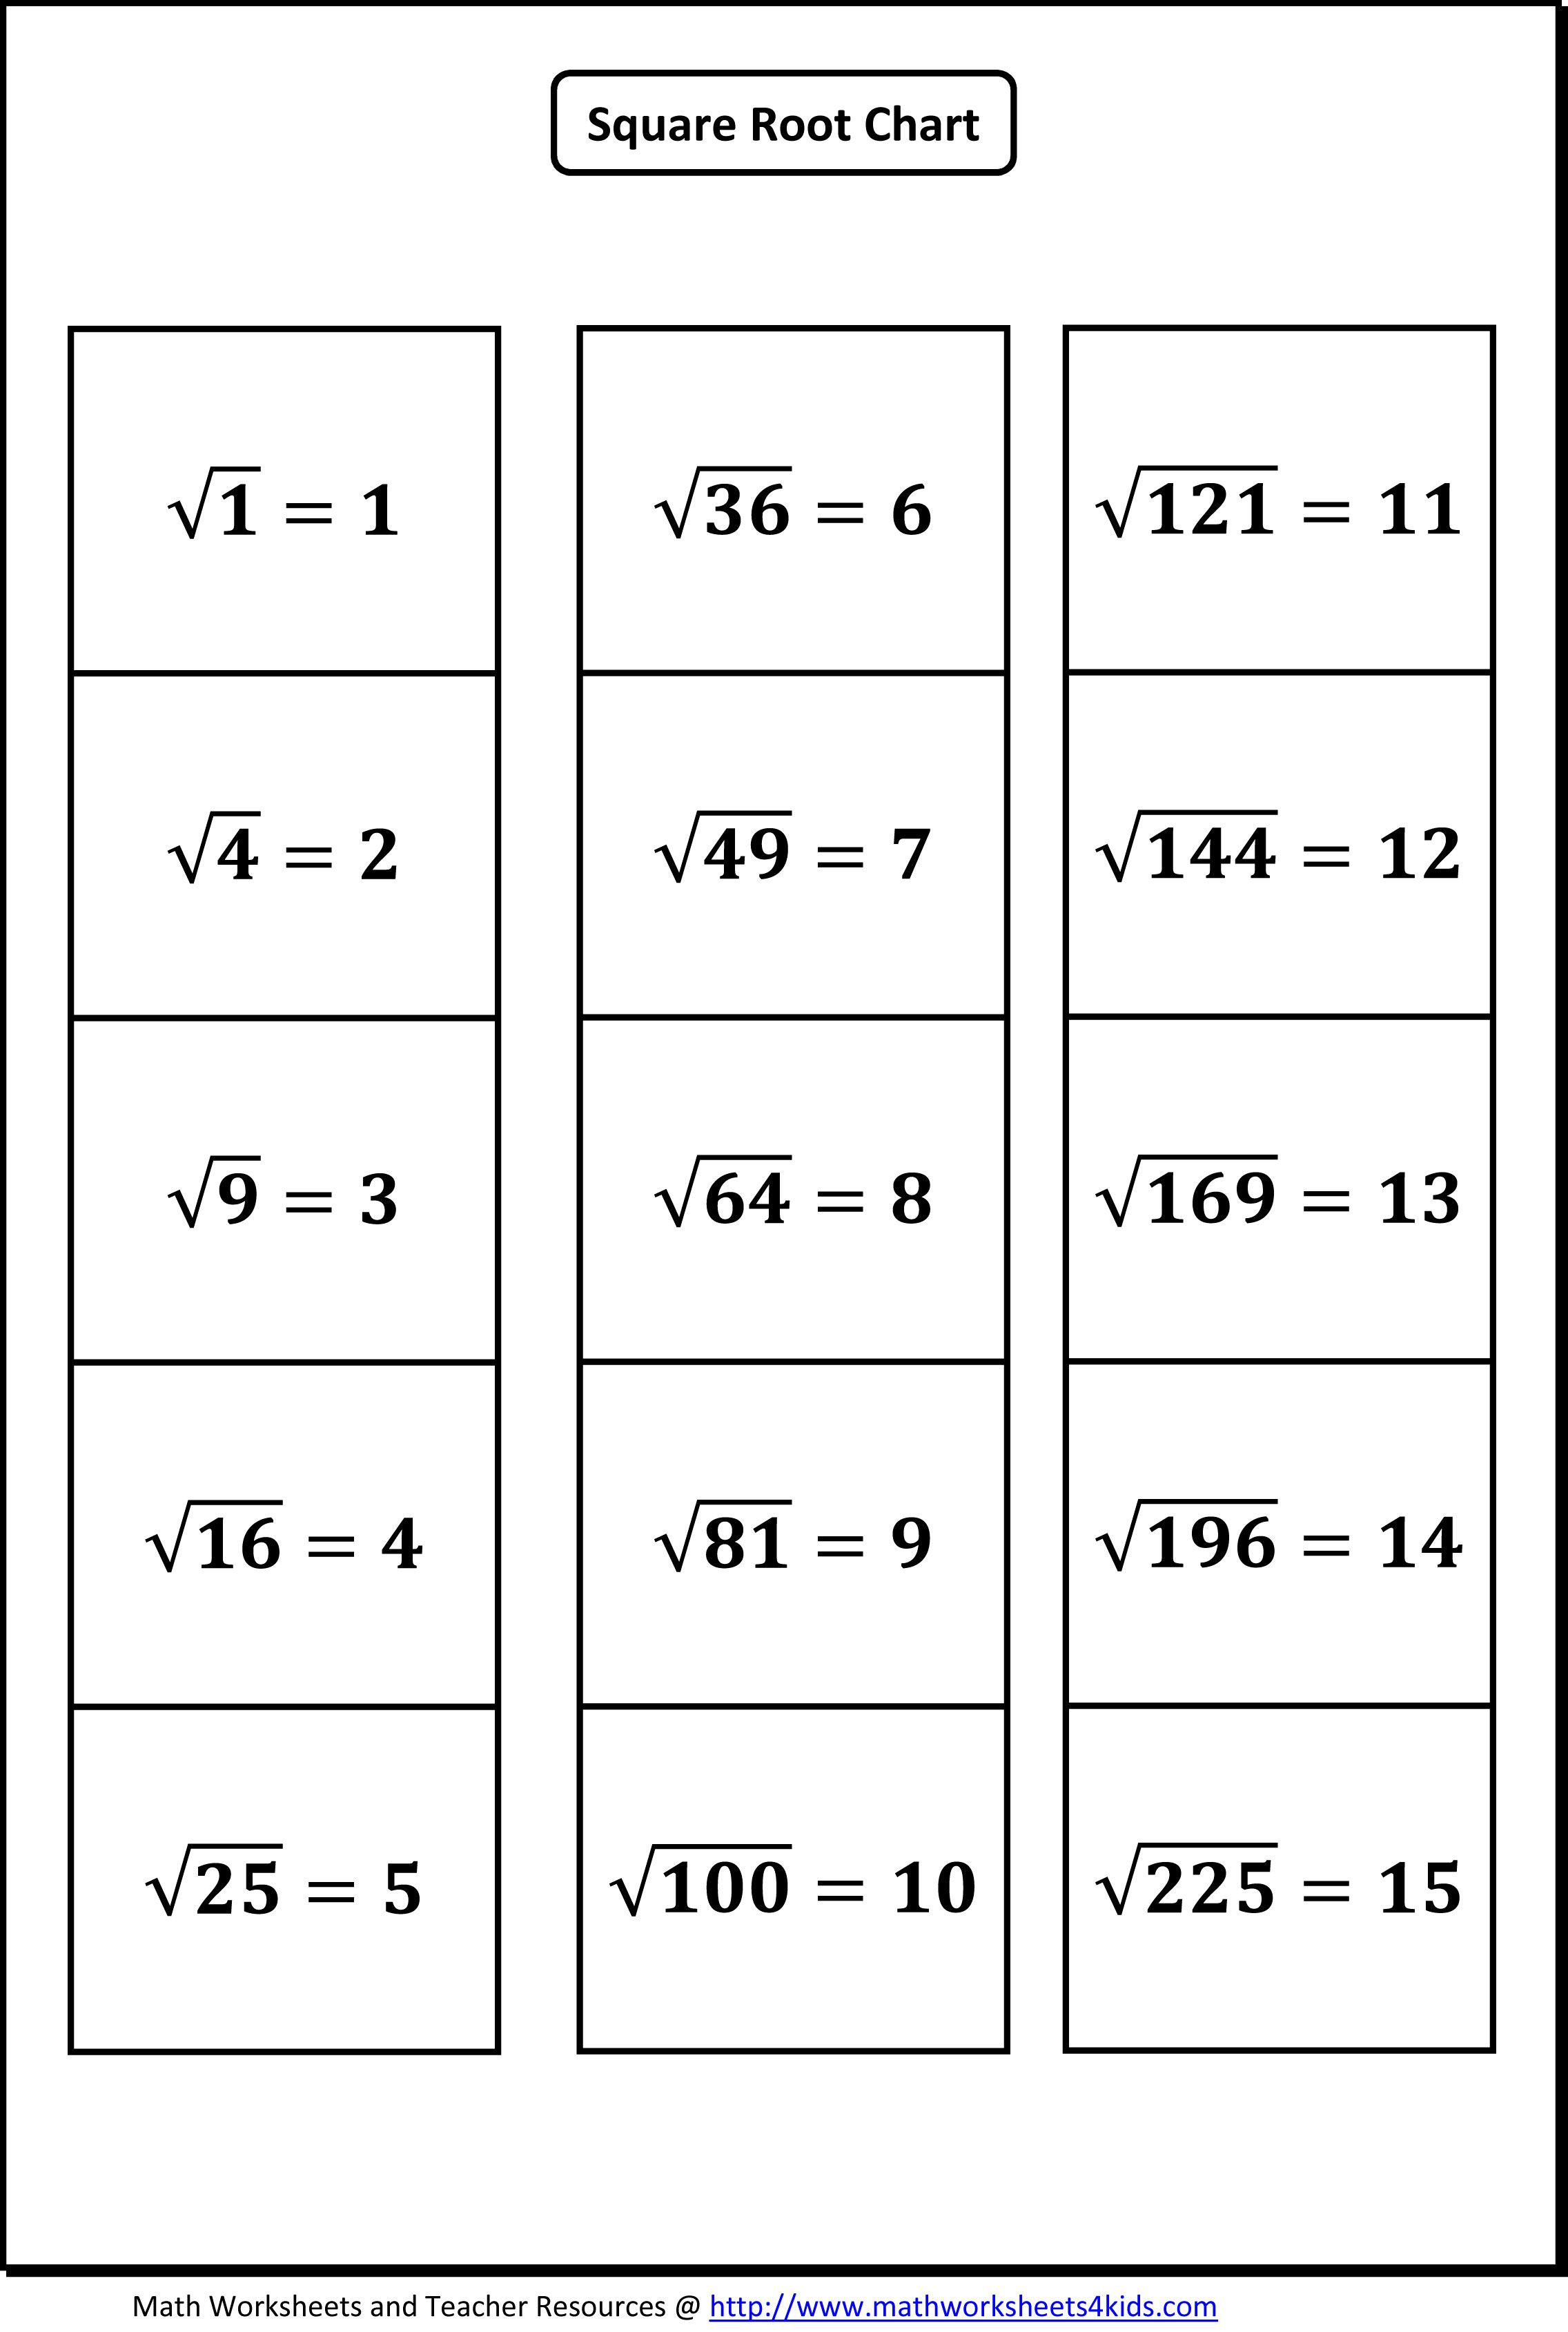 Square Root Worksheets Find The Square Root Of Whole